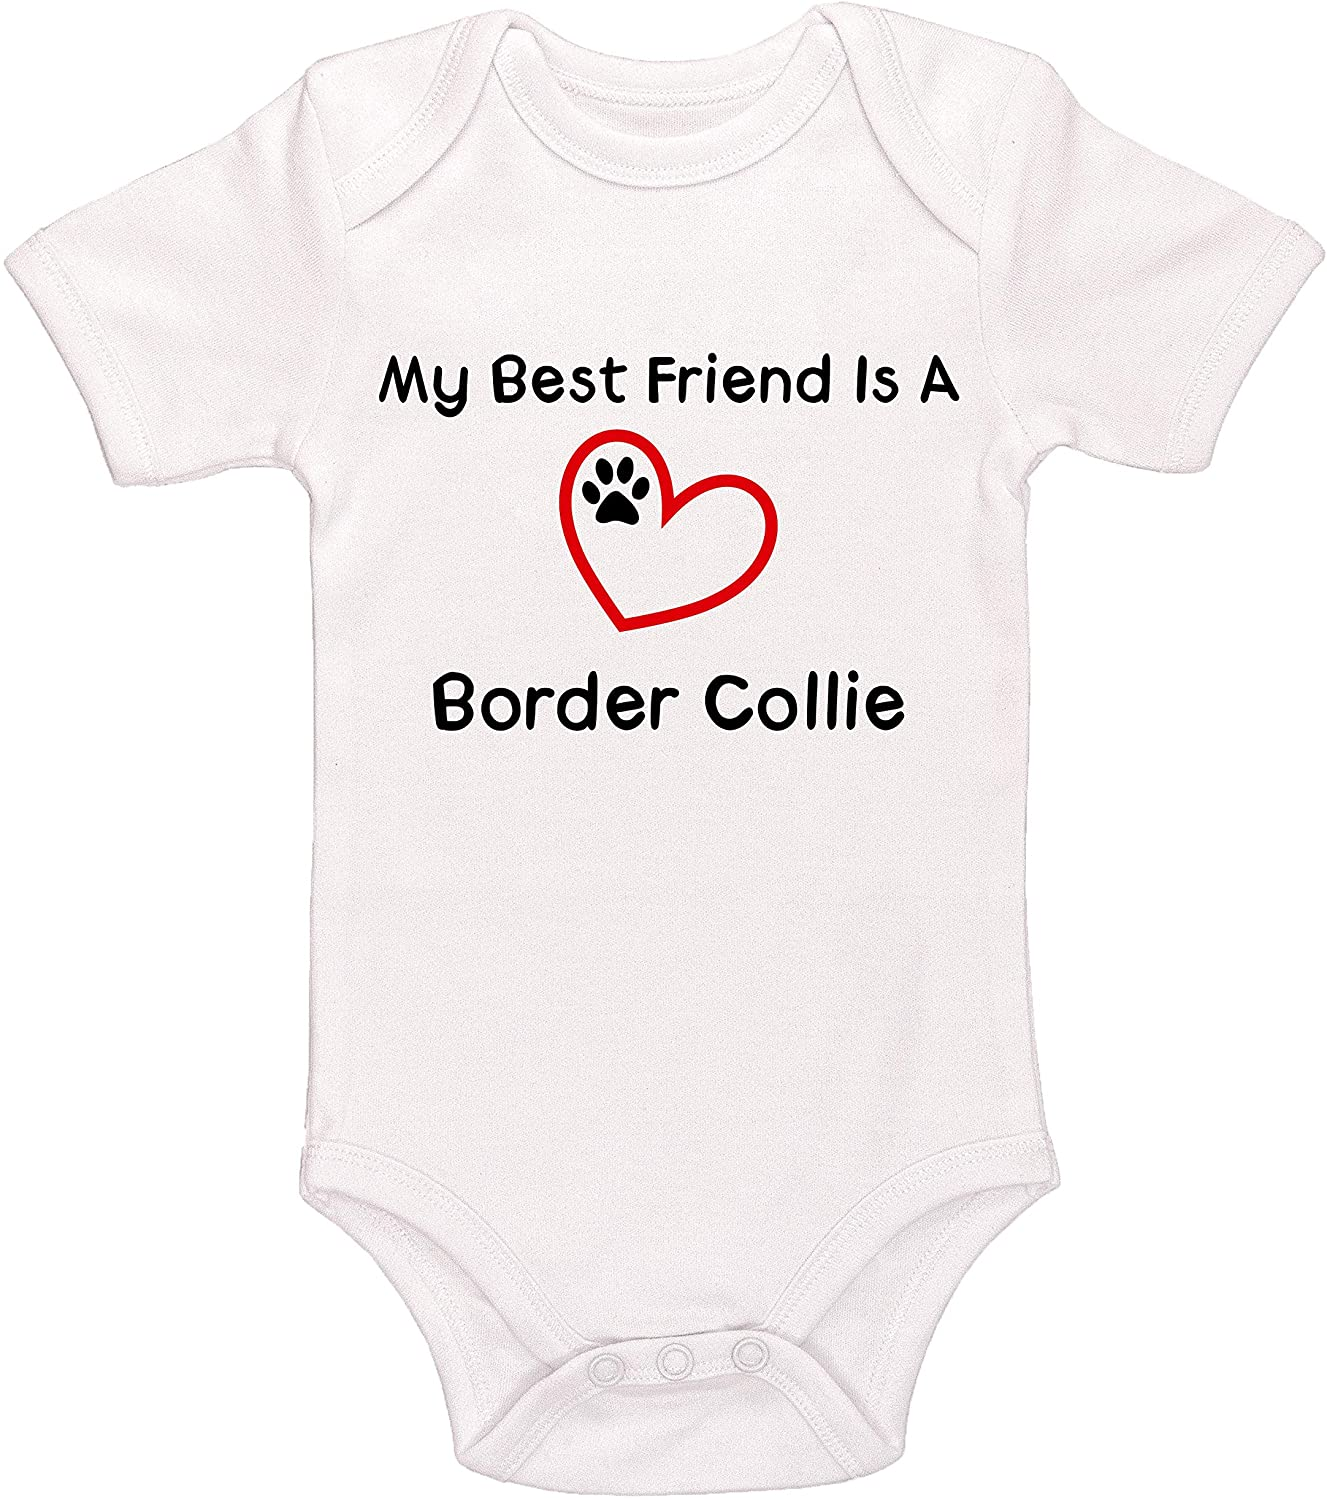 Kinacle My Best Friend is A Border Collie Baby Bodysuit